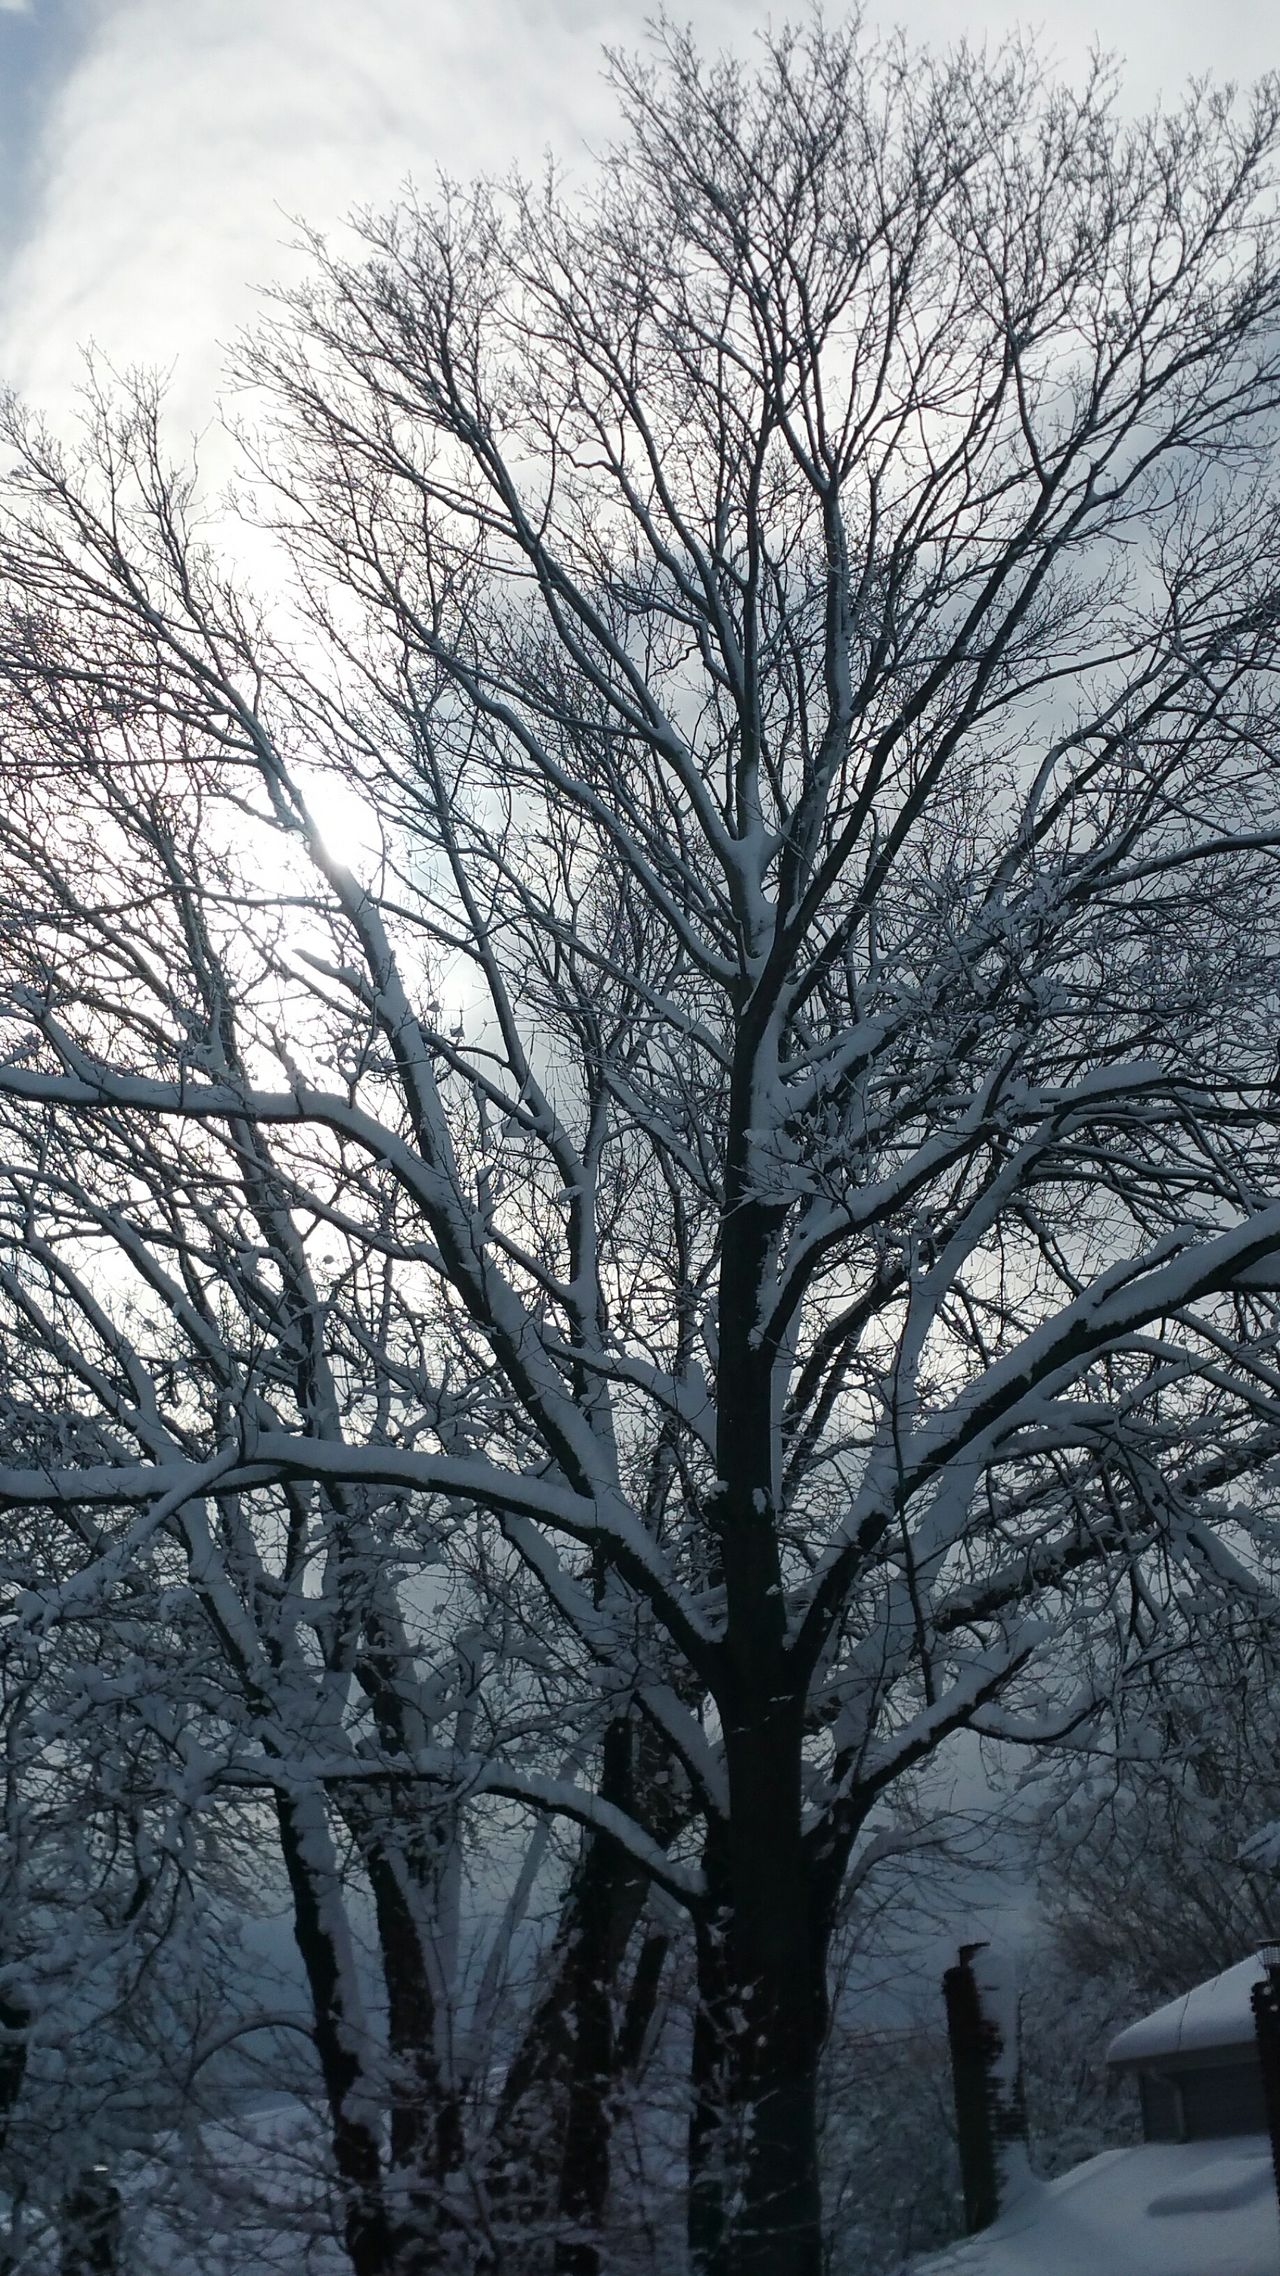 Tree Branch Bare Tree Nature Beauty In Nature Tranquility Cold Temperature Winter Outdoors No People Snow Snowy Trees Snowy Morning White Winter Snowfall In NY Long Island NY Beauty In Nature Snow Branches Morning After The Storm Snow On Rooftops Chimmeys EyeEmNewHere